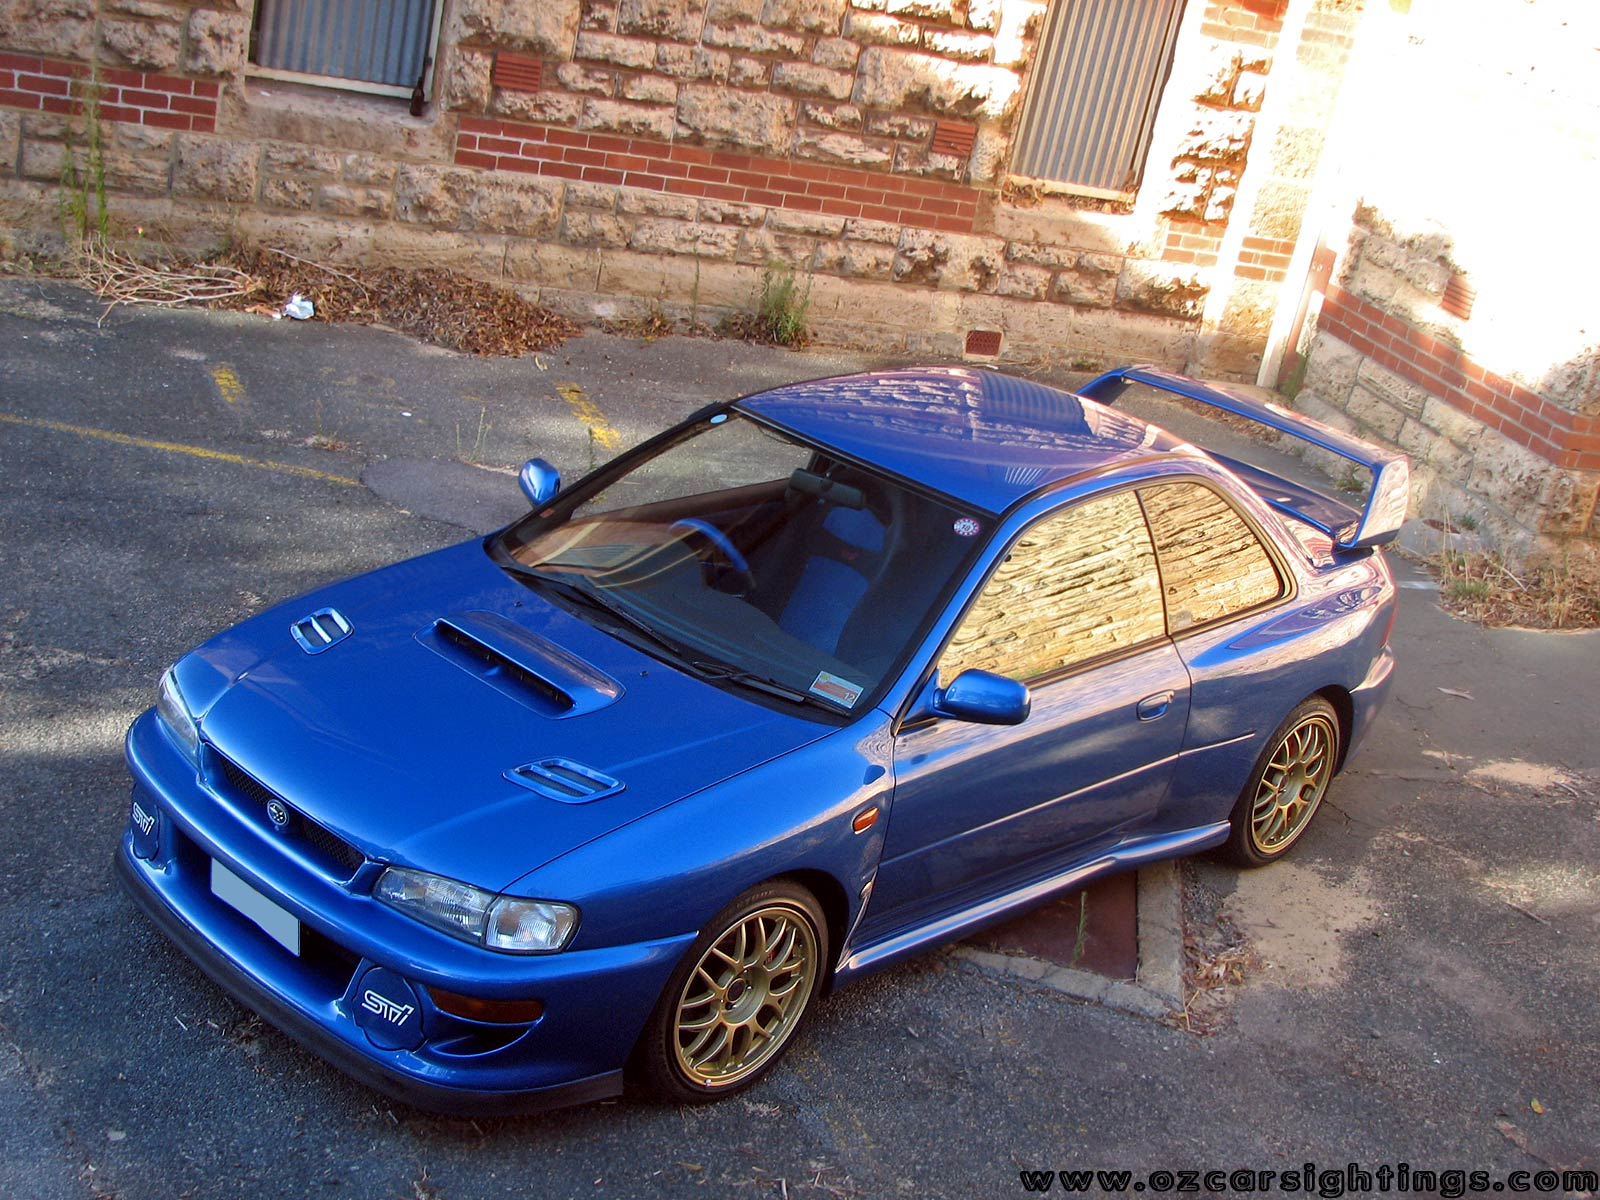 3dtuning of subaru impreza 22b coupe 1998 unique on line car configurator for. Black Bedroom Furniture Sets. Home Design Ideas